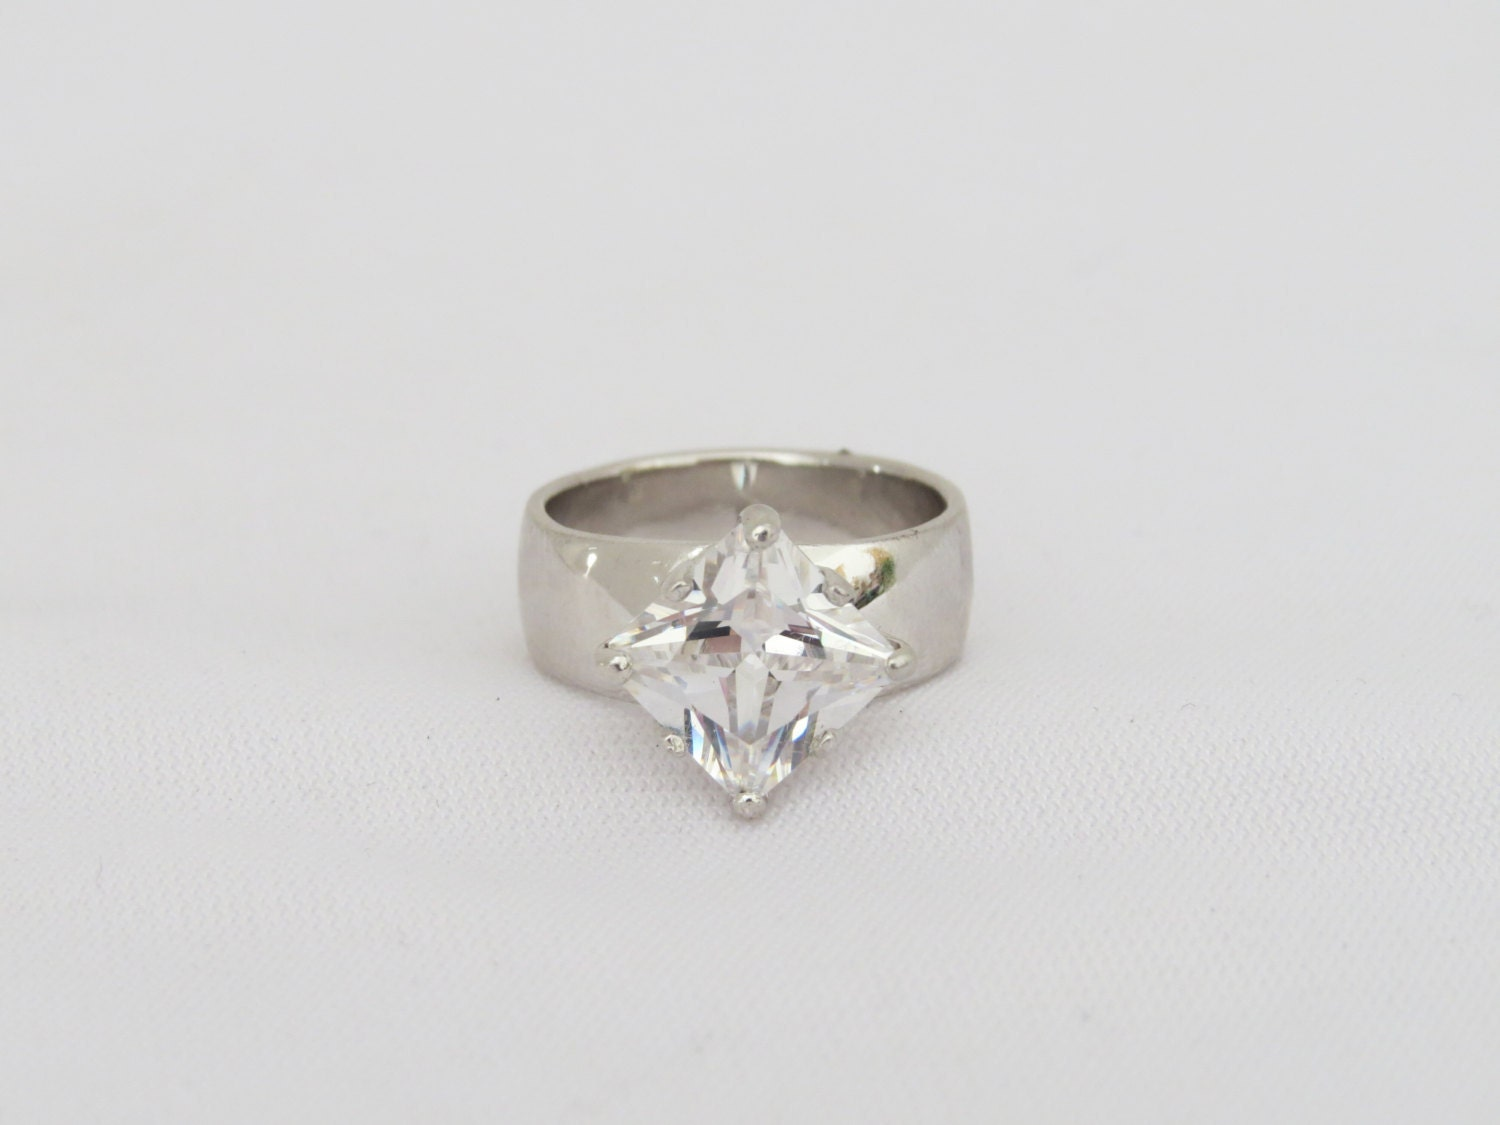 vintage sterling silver princess cut white topaz ring size 6 5